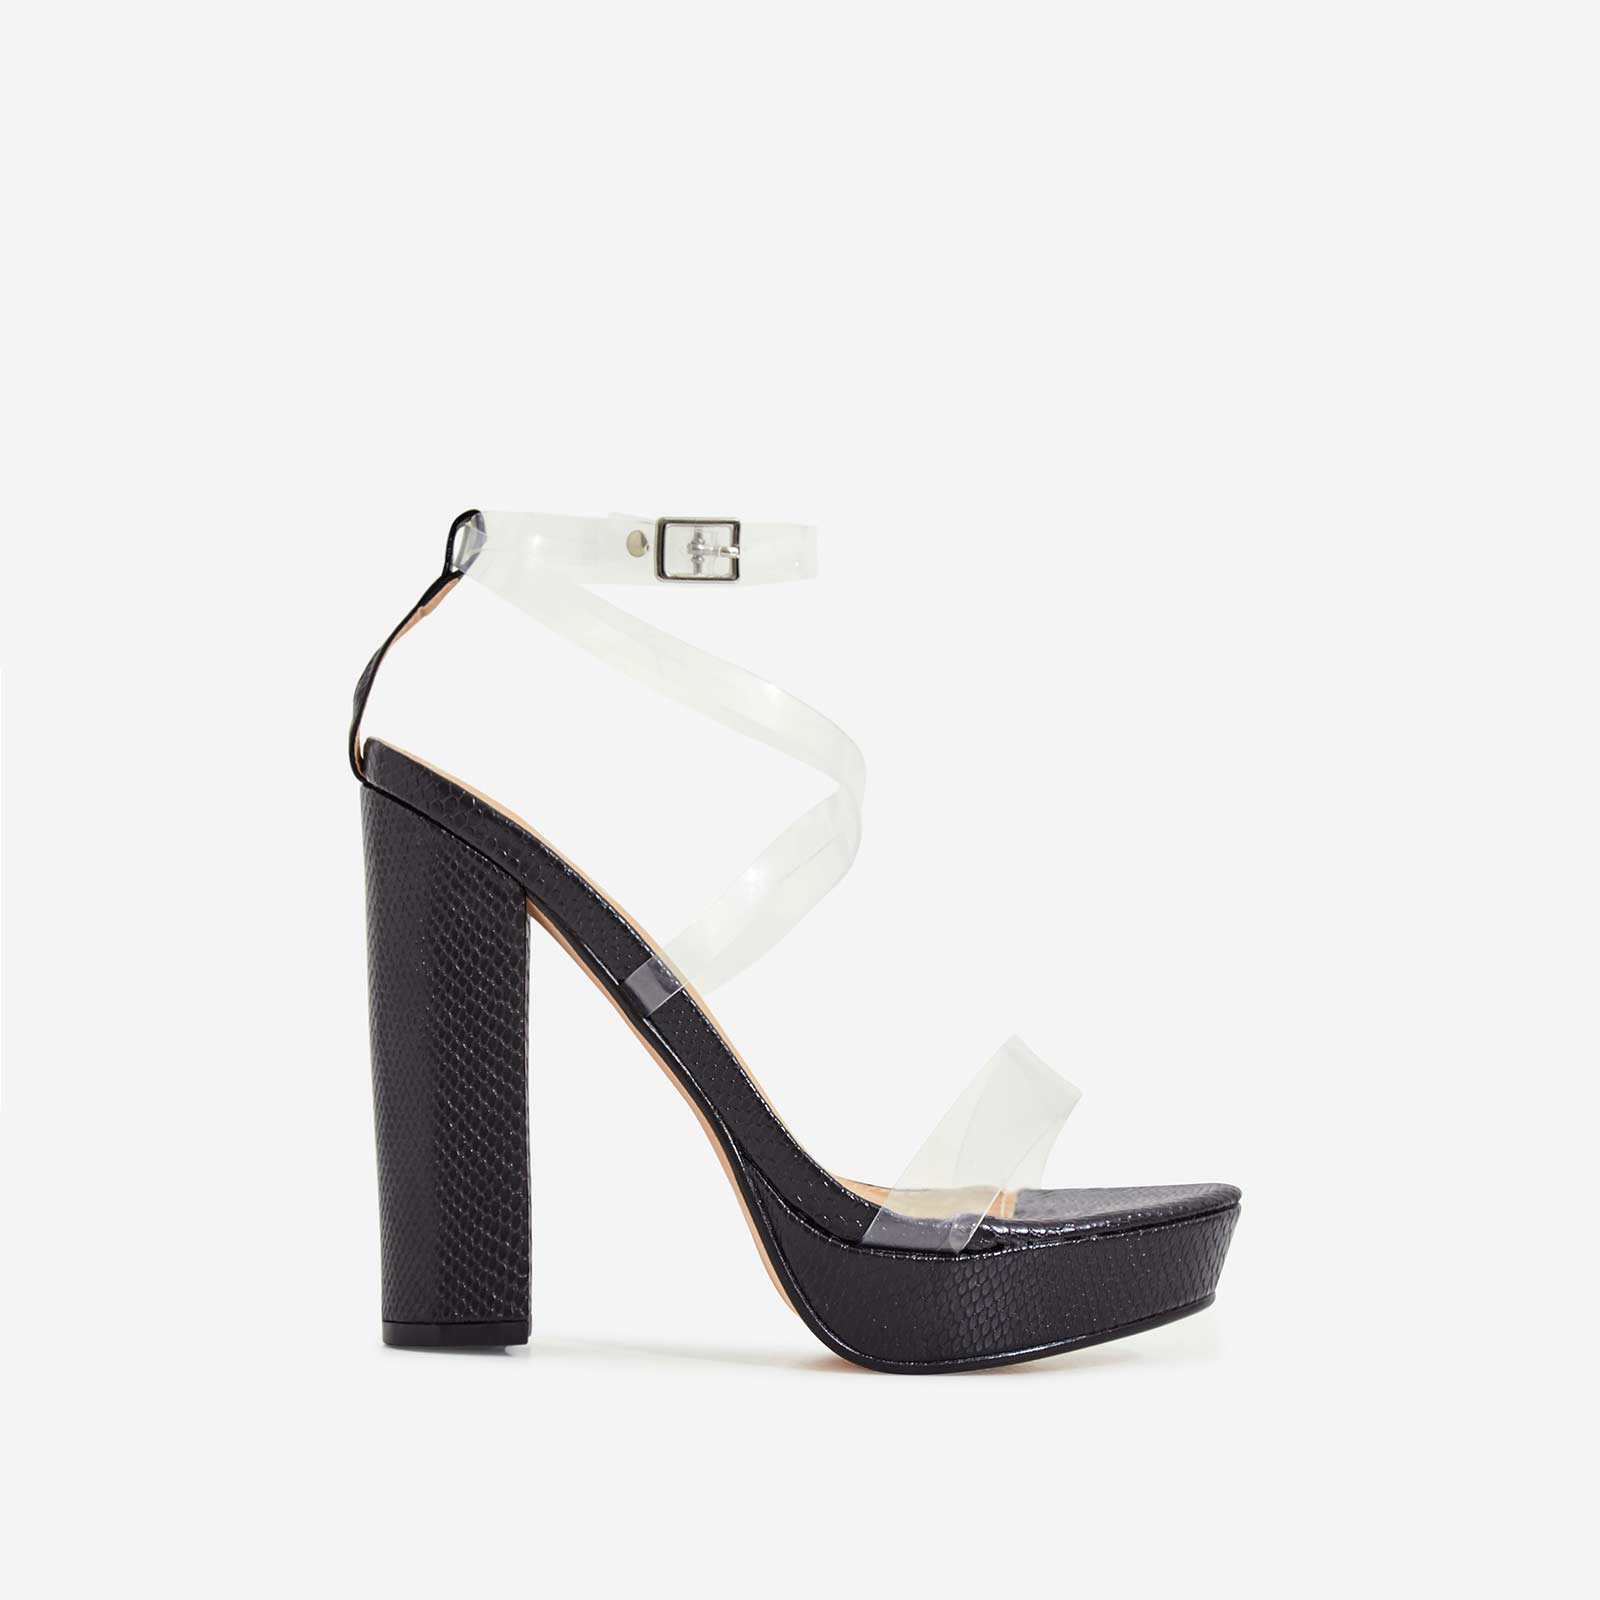 Bumble Perspex Platform Block Heel In Black Patent